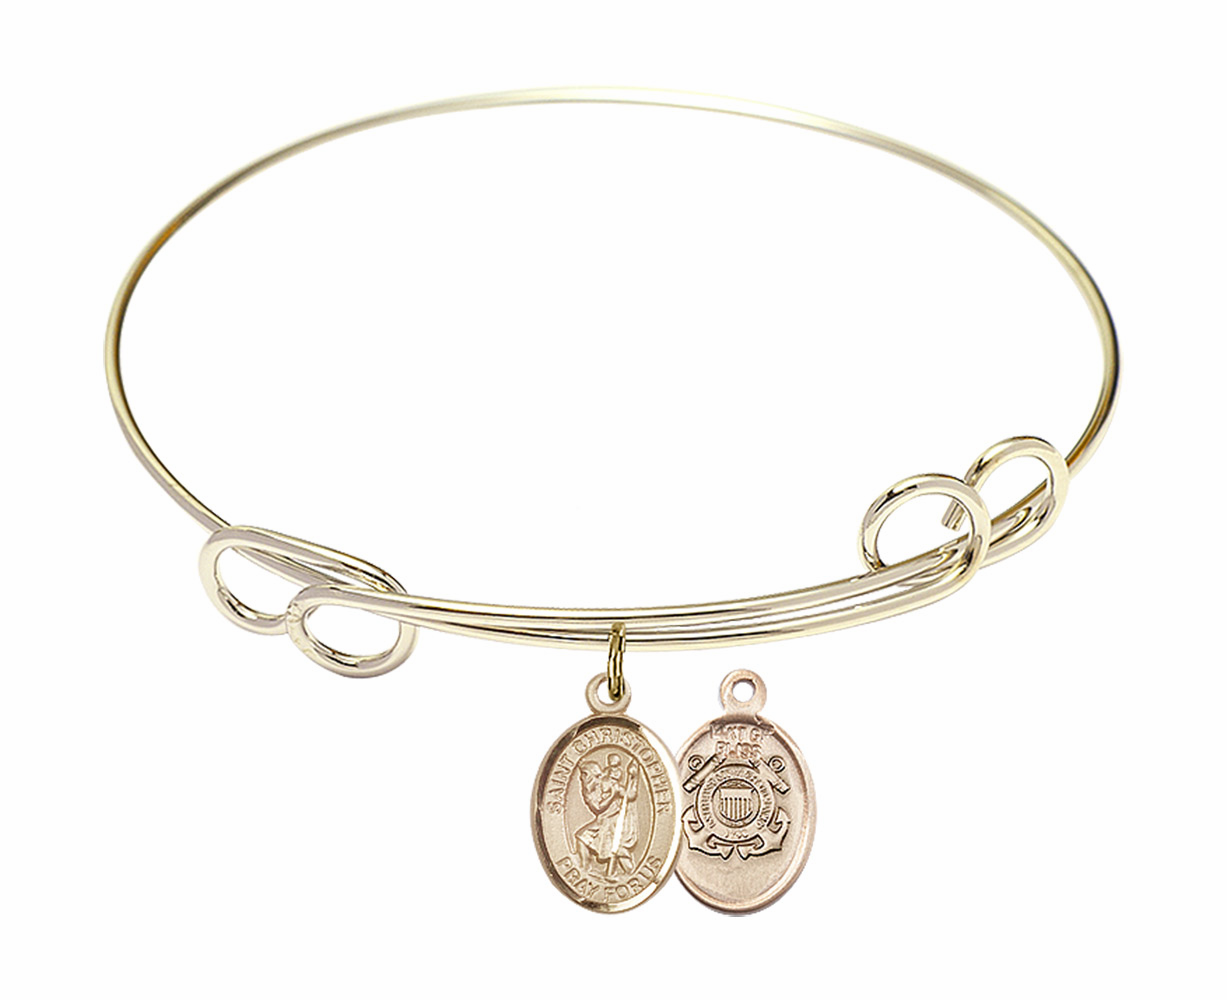 Gold-Filled Twisted St Christopher Coast Guard Bangle Charm Bracelet by Bliss